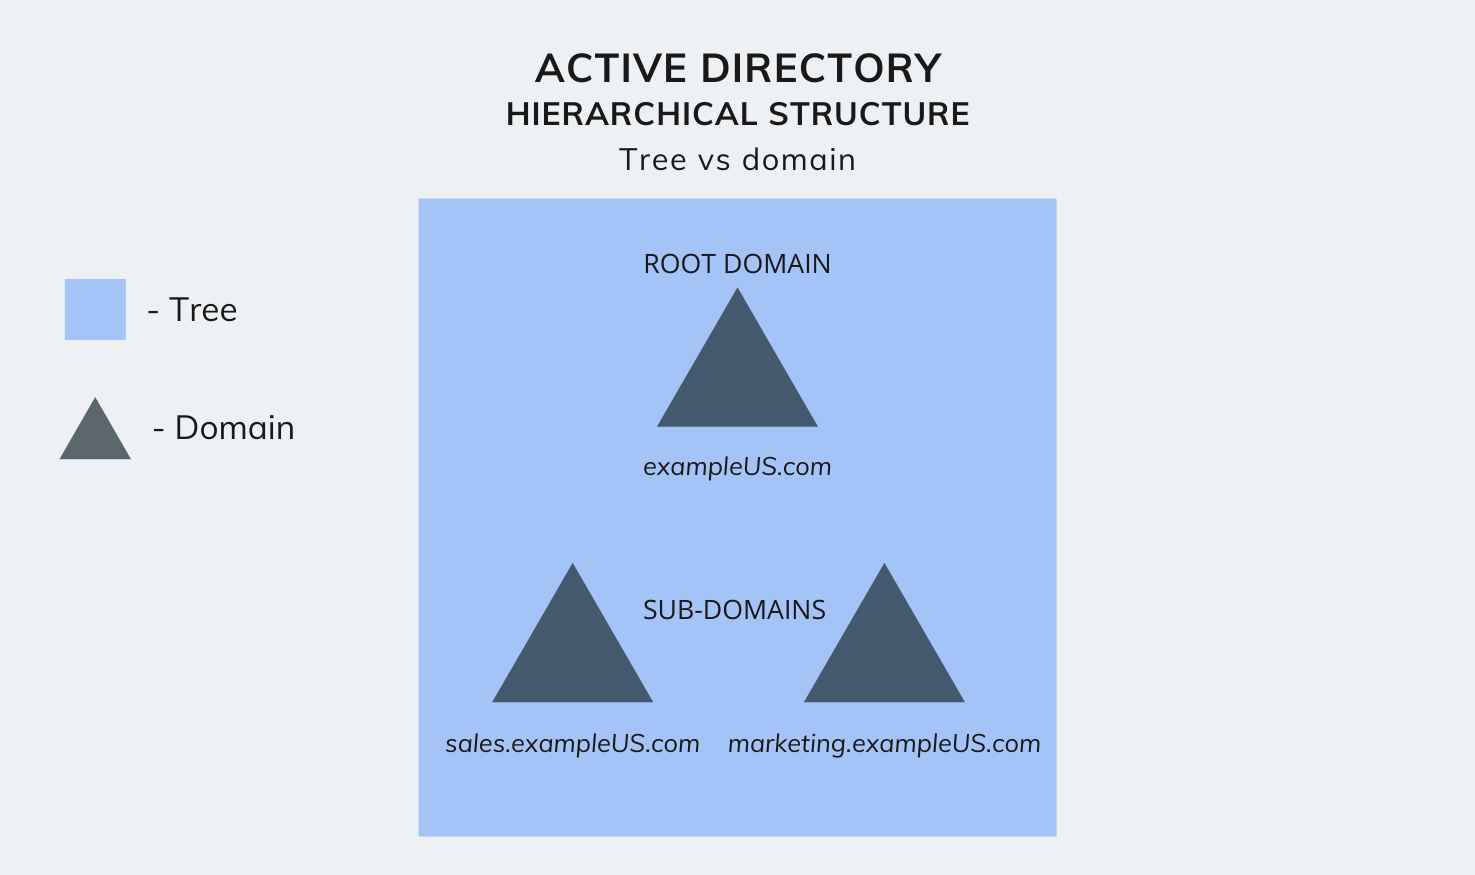 Active Directory hierarchical structure - Tree vs domain